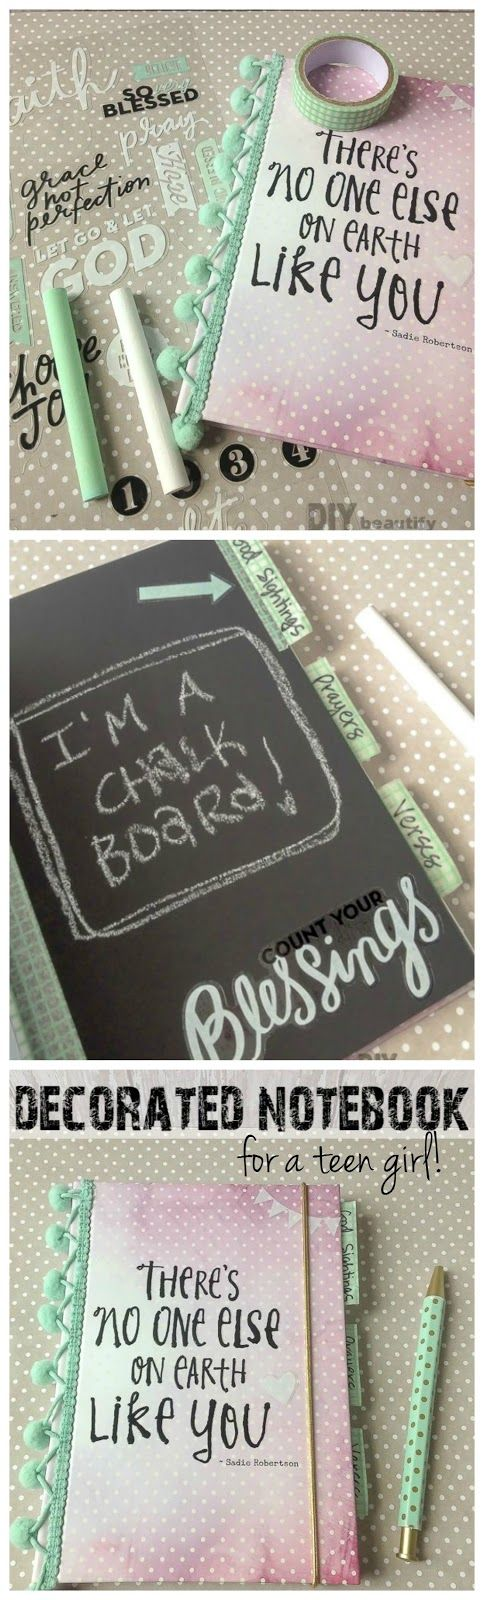 Decorated notebook for teen girl using Live Original line | DIY beautify